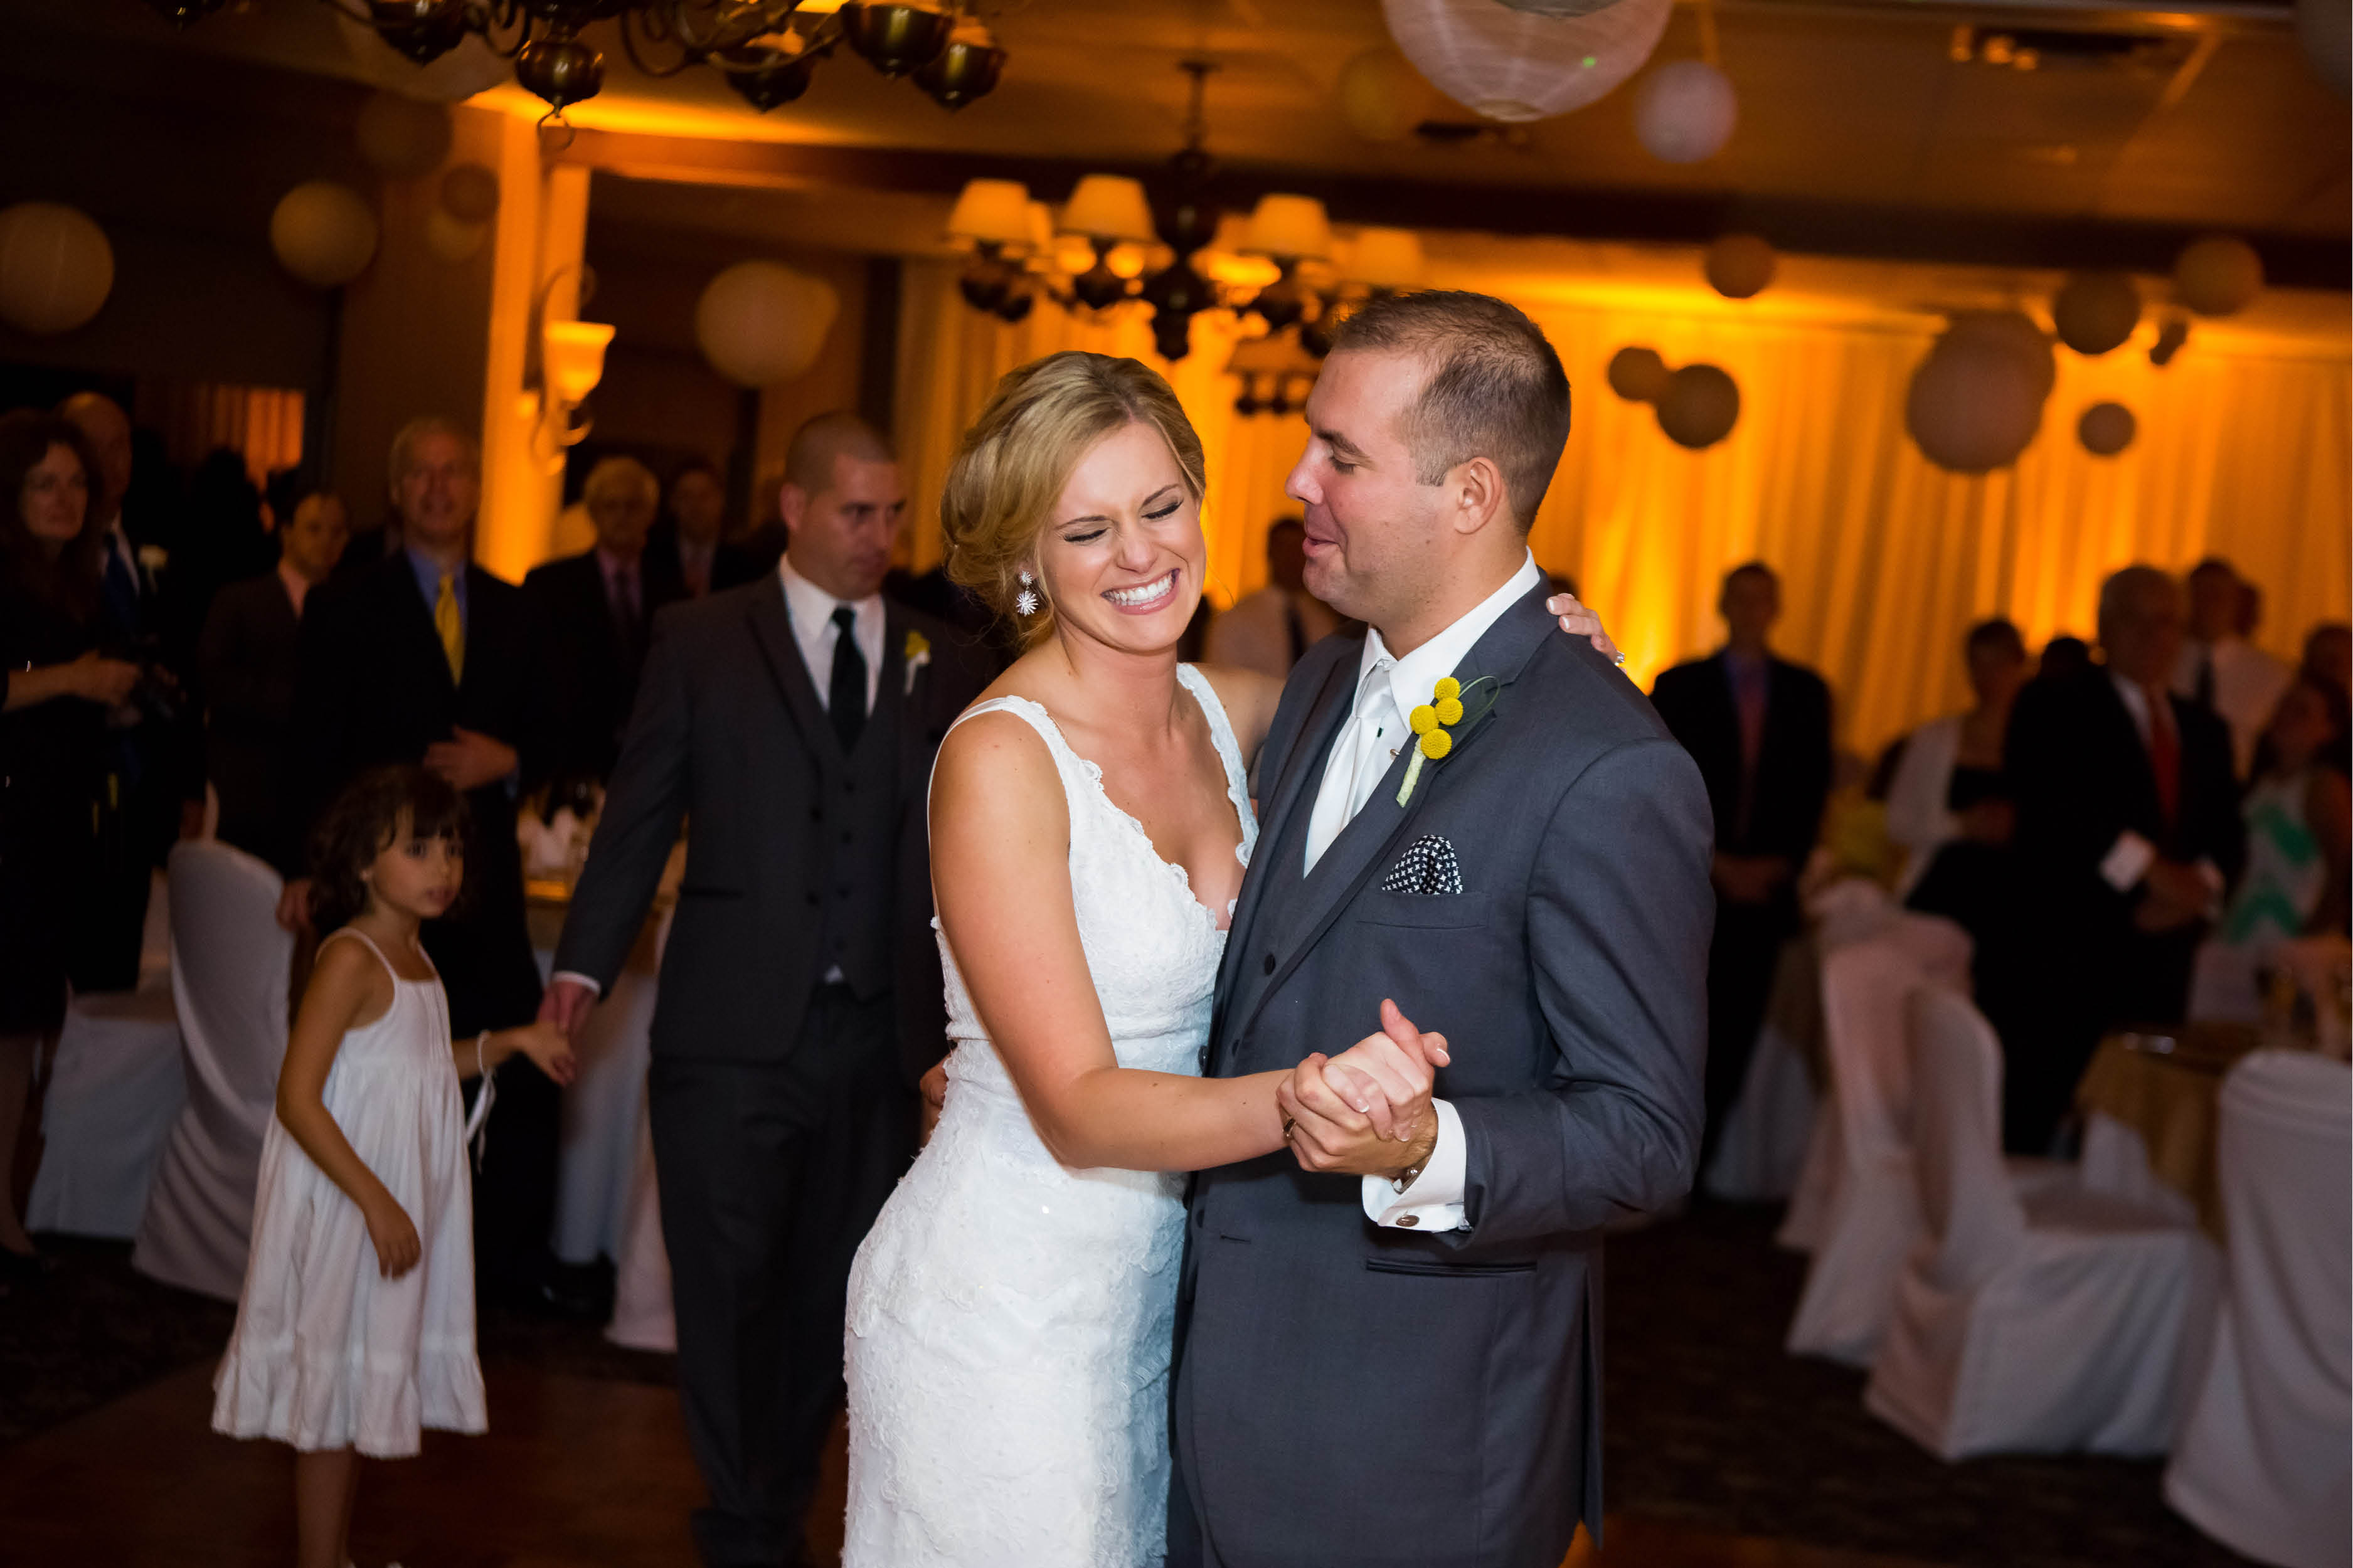 woodloch wedding24